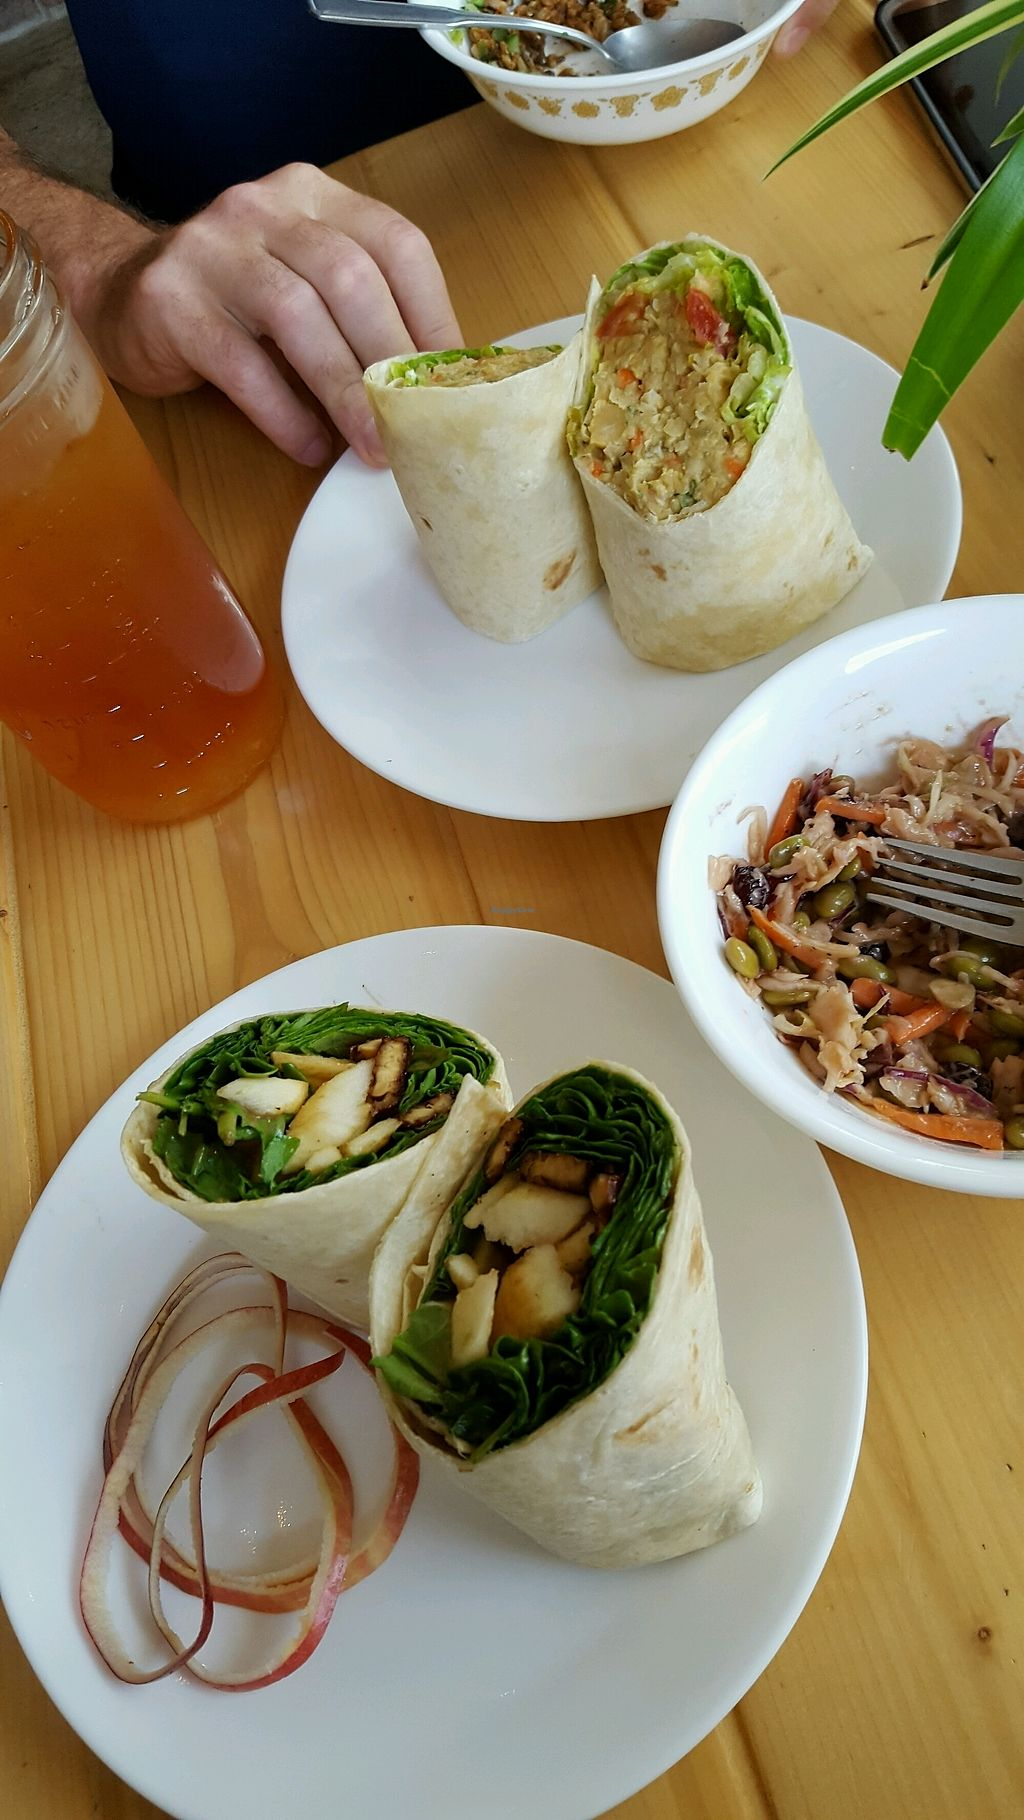 """Photo of Grindhaus Cafe  by <a href=""""/members/profile/sydneygram"""">sydneygram</a> <br/>yummmm <br/> August 30, 2017  - <a href='/contact/abuse/image/62513/299091'>Report</a>"""